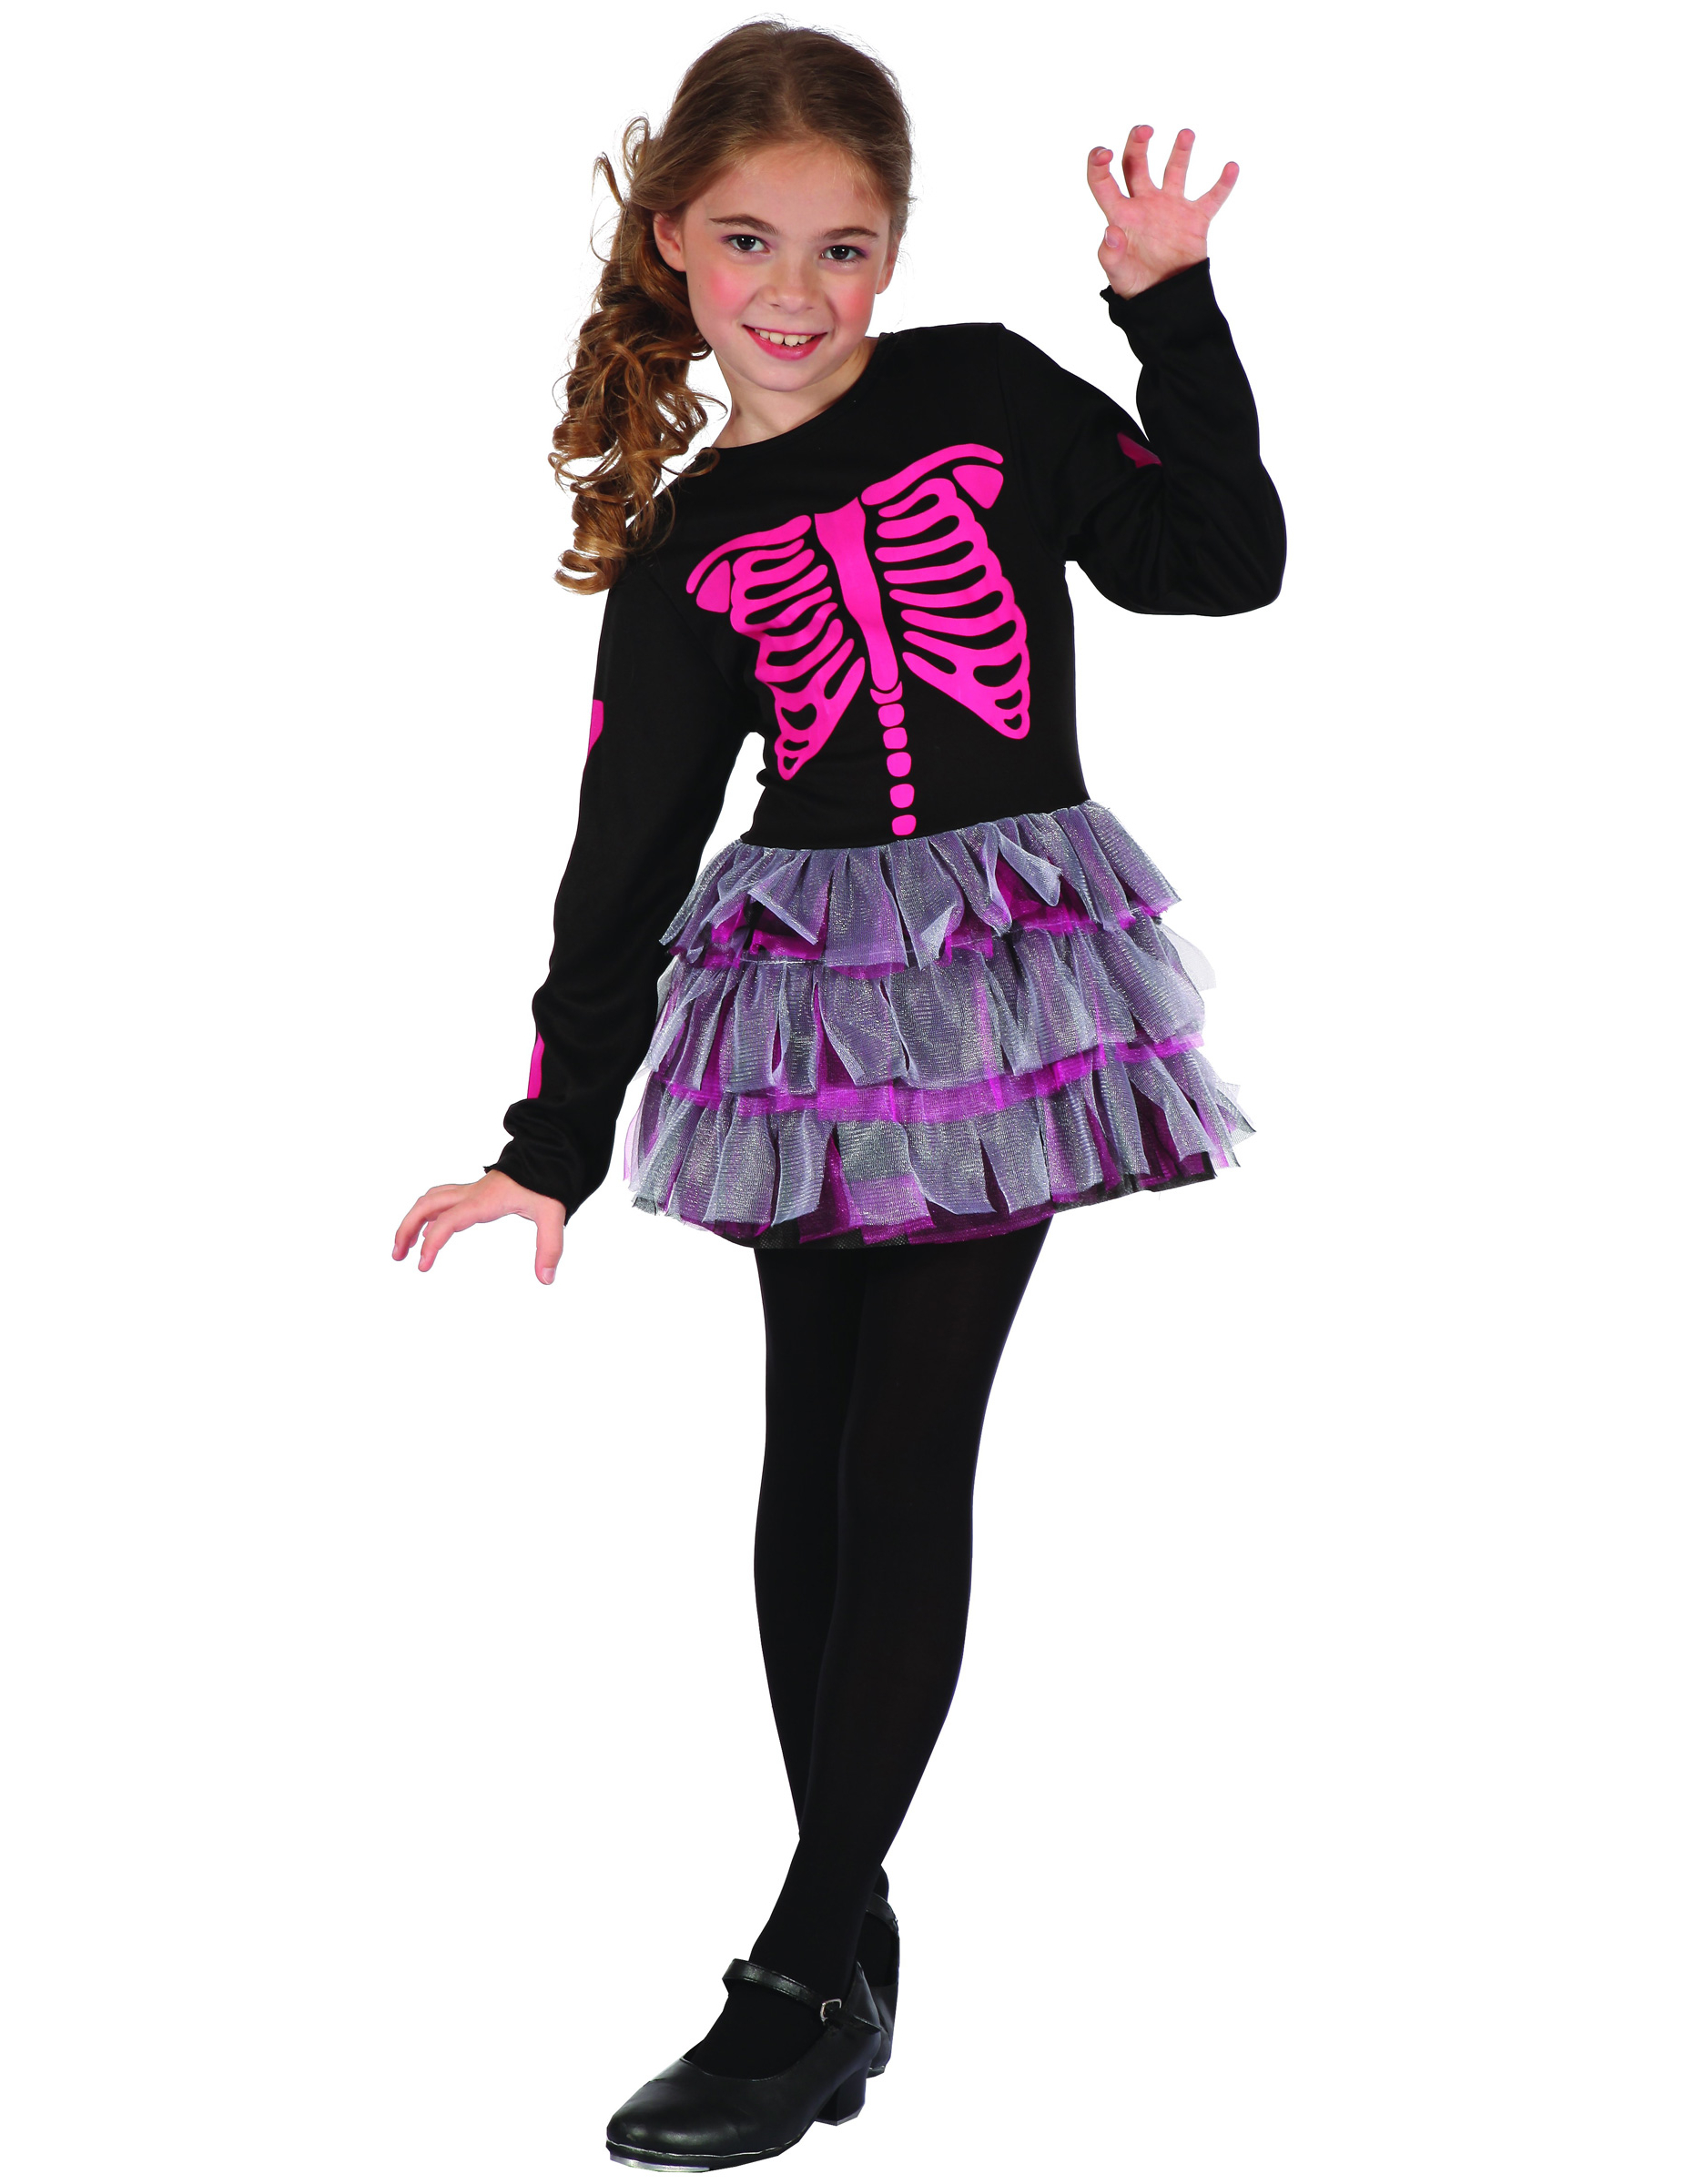 niedliches skelett m dchen halloween kinderkost m schwarz pink g nstige faschings kost me bei. Black Bedroom Furniture Sets. Home Design Ideas